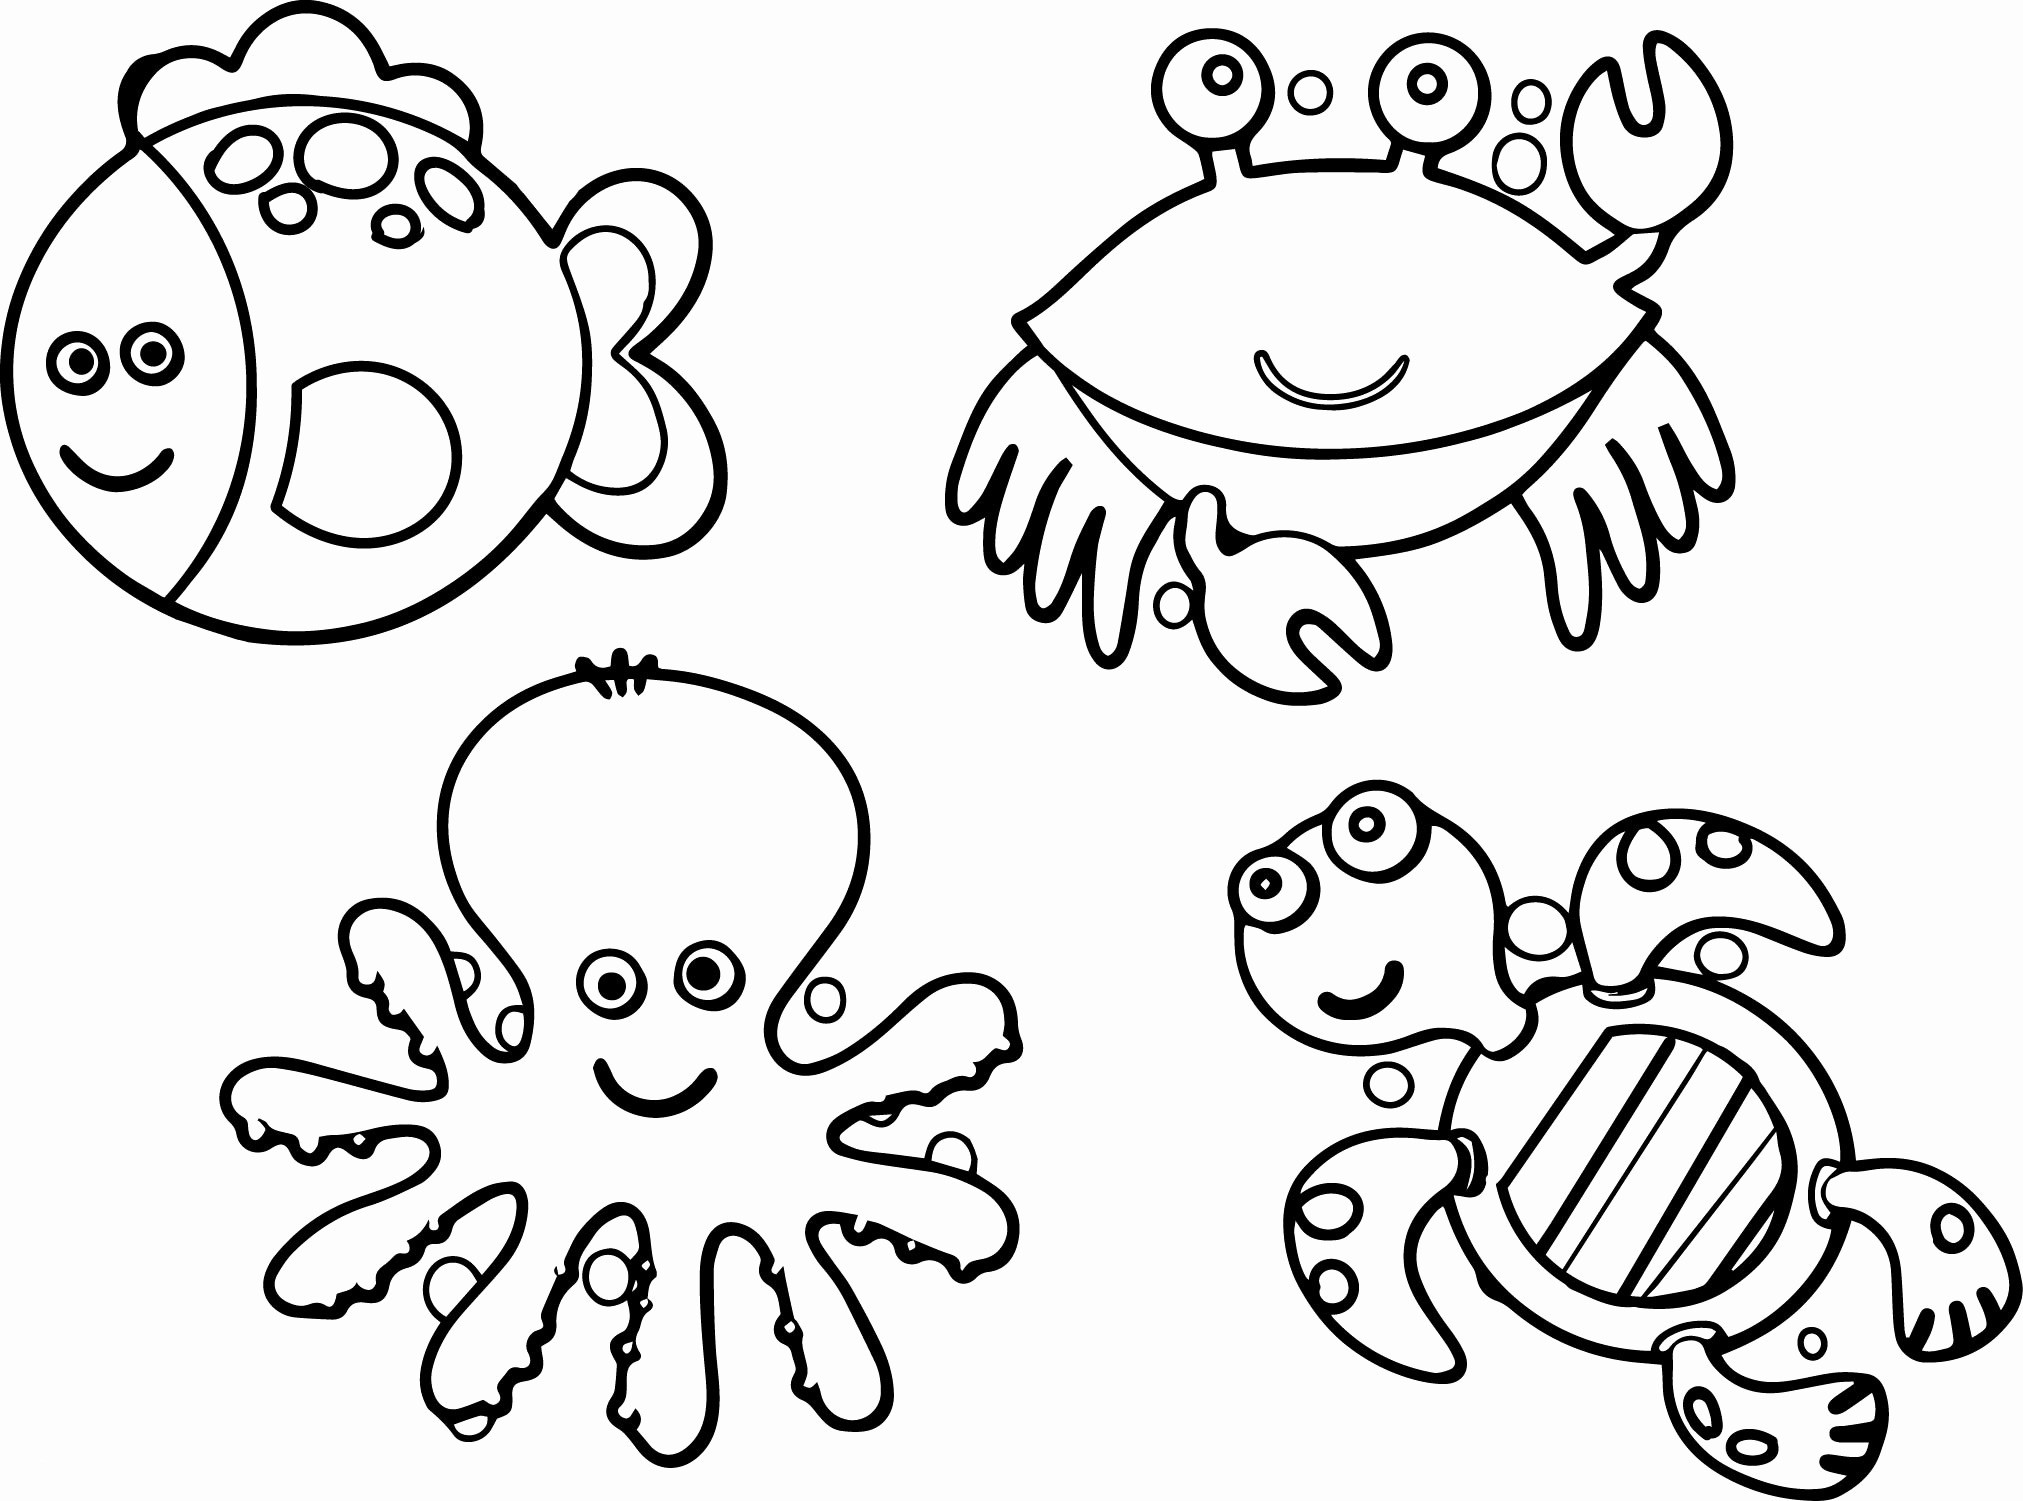 animal coloring page all animals coloring pages download and print for free animal coloring page